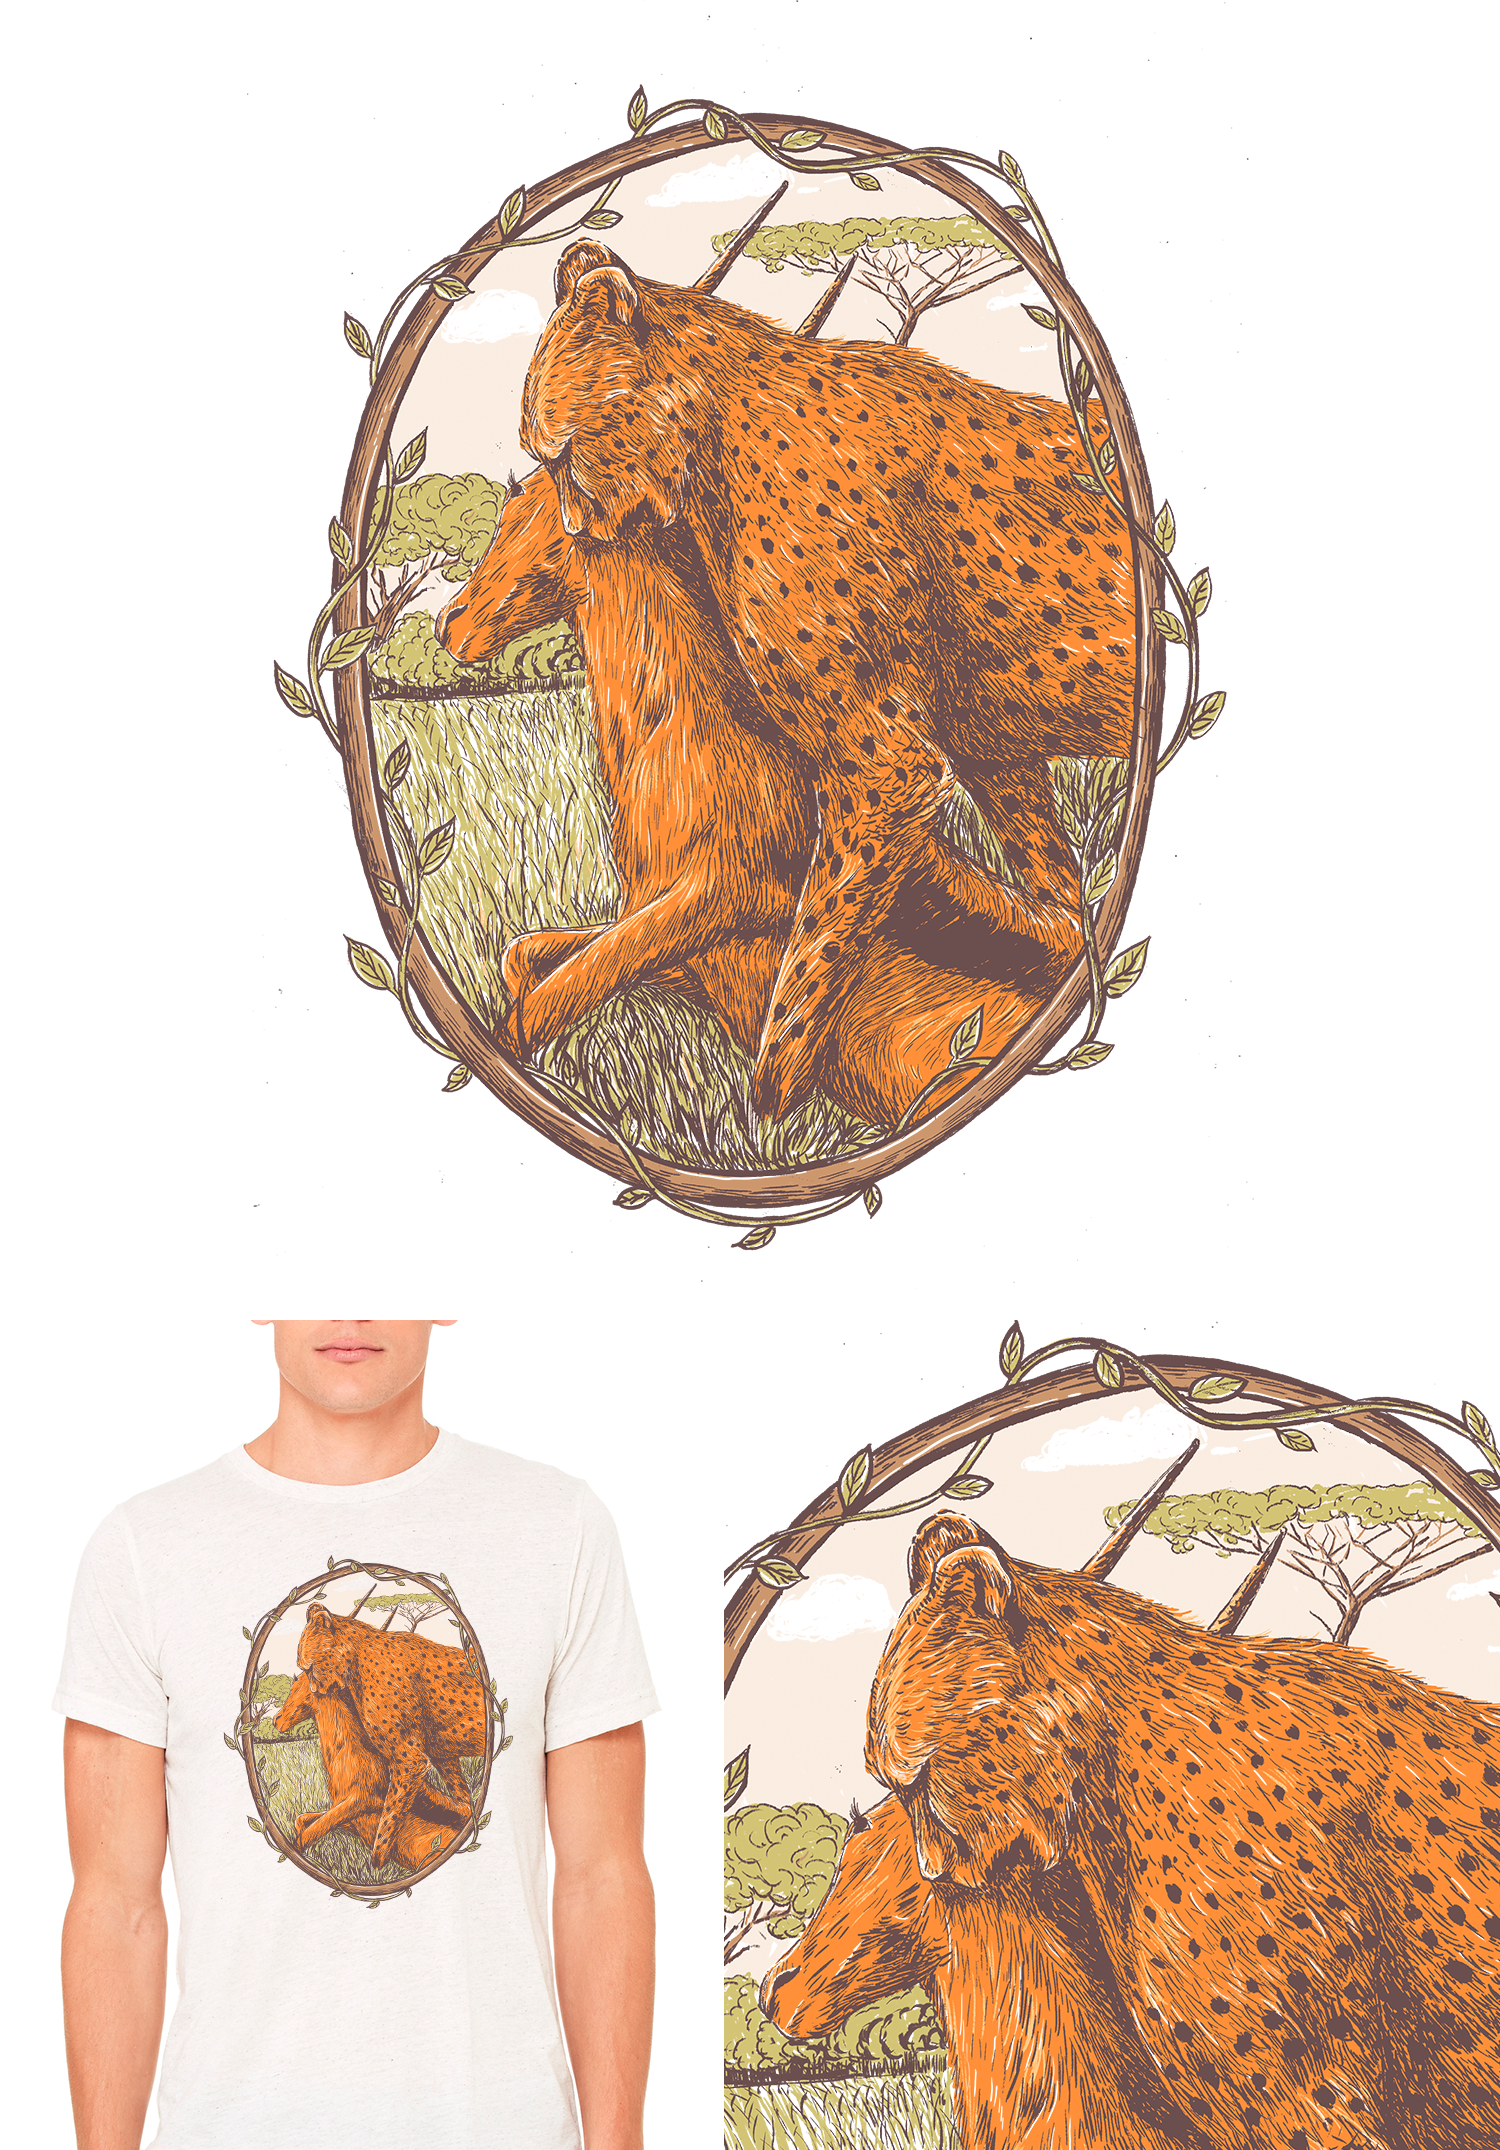 Conscious Hunting x 2 Designs